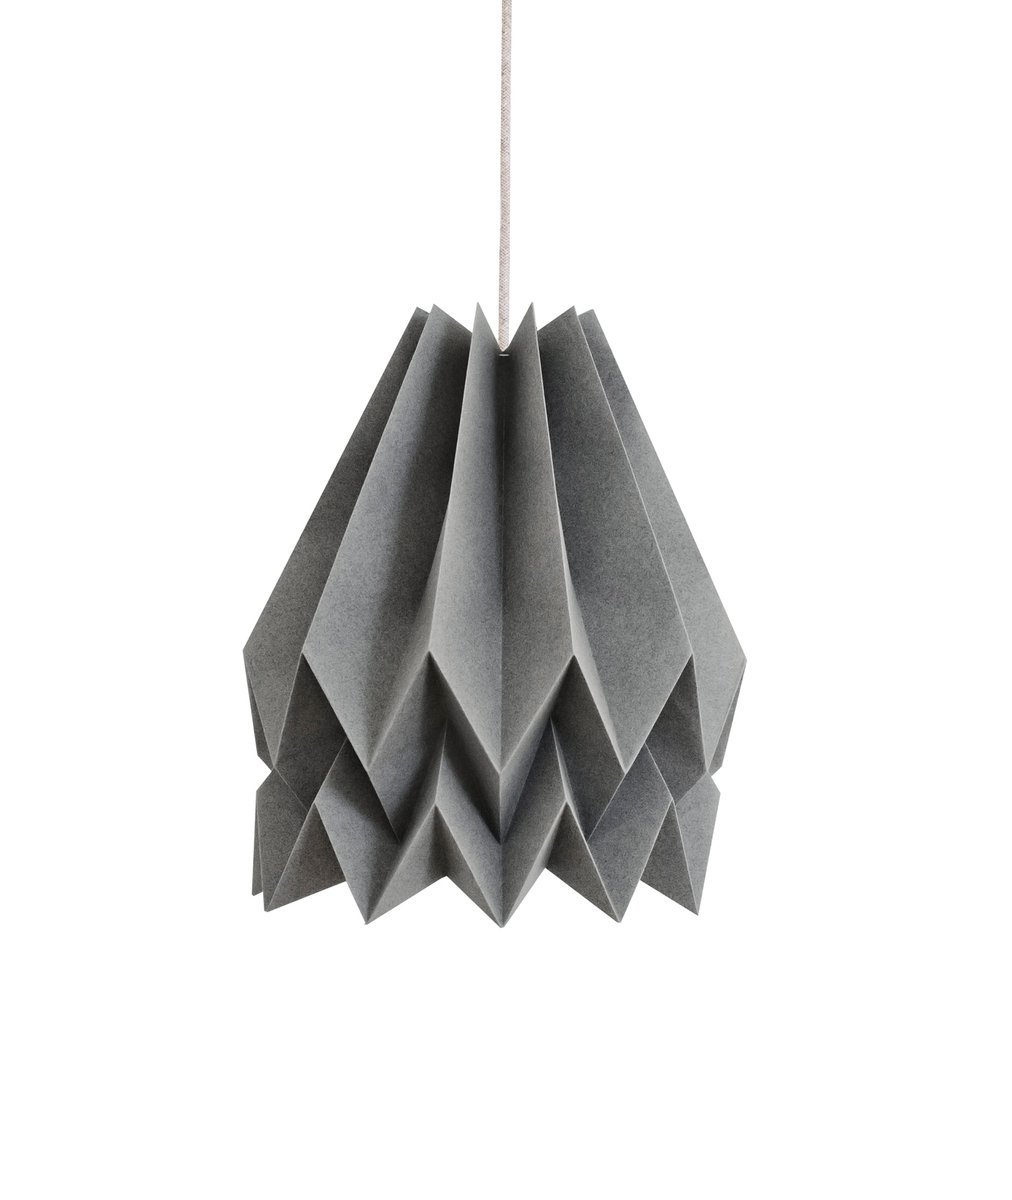 lampe origami gris alpin par orikomi en vente sur pamono. Black Bedroom Furniture Sets. Home Design Ideas